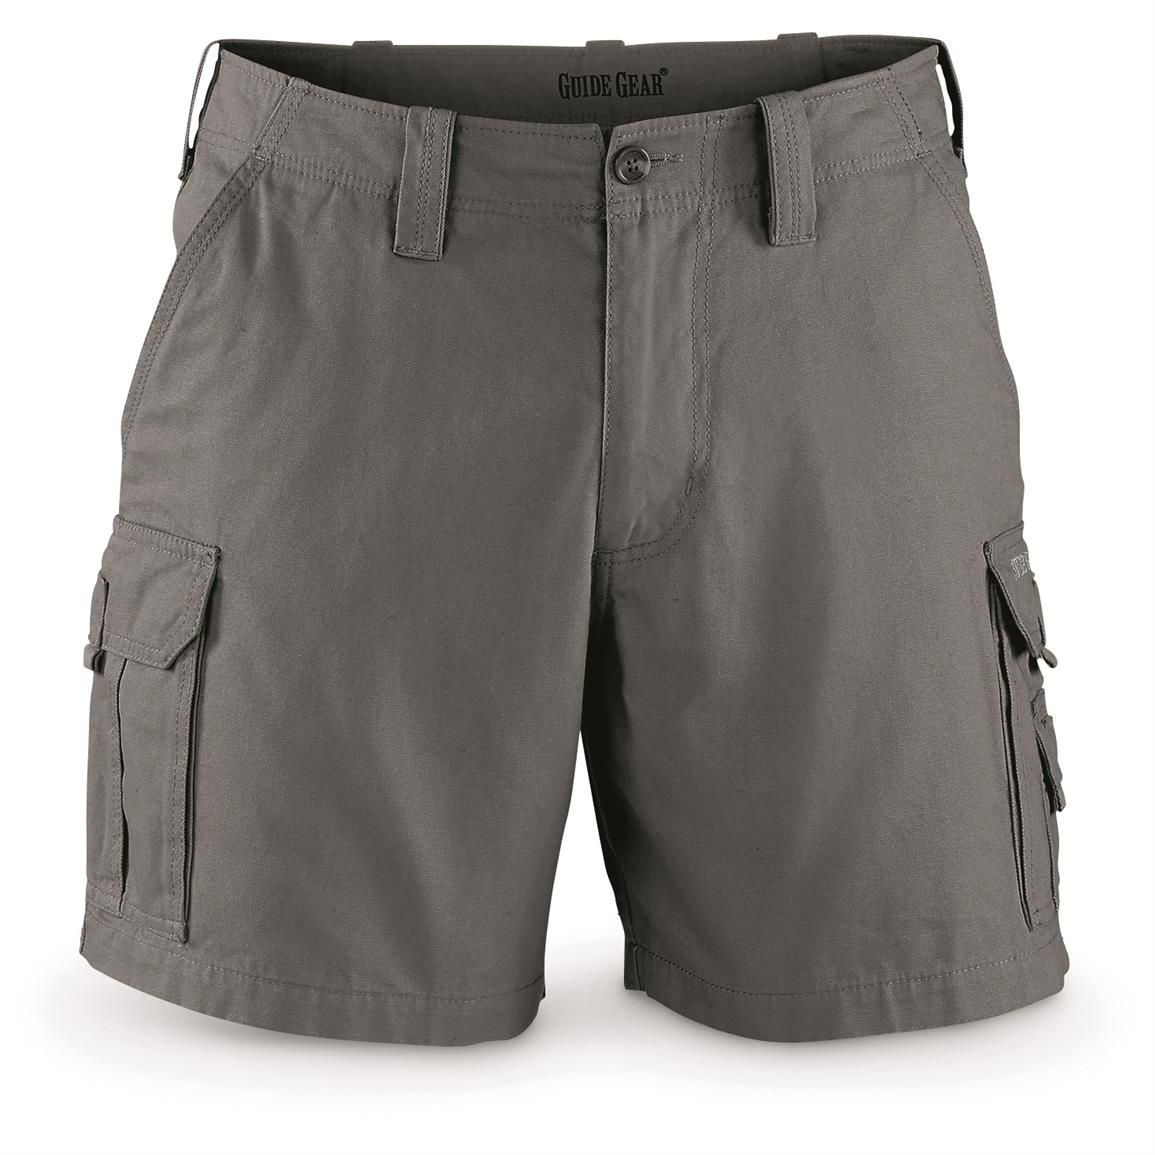 "Guide Gear Men's Outdoor Cargo Shorts, Gray, 6"" inseam"